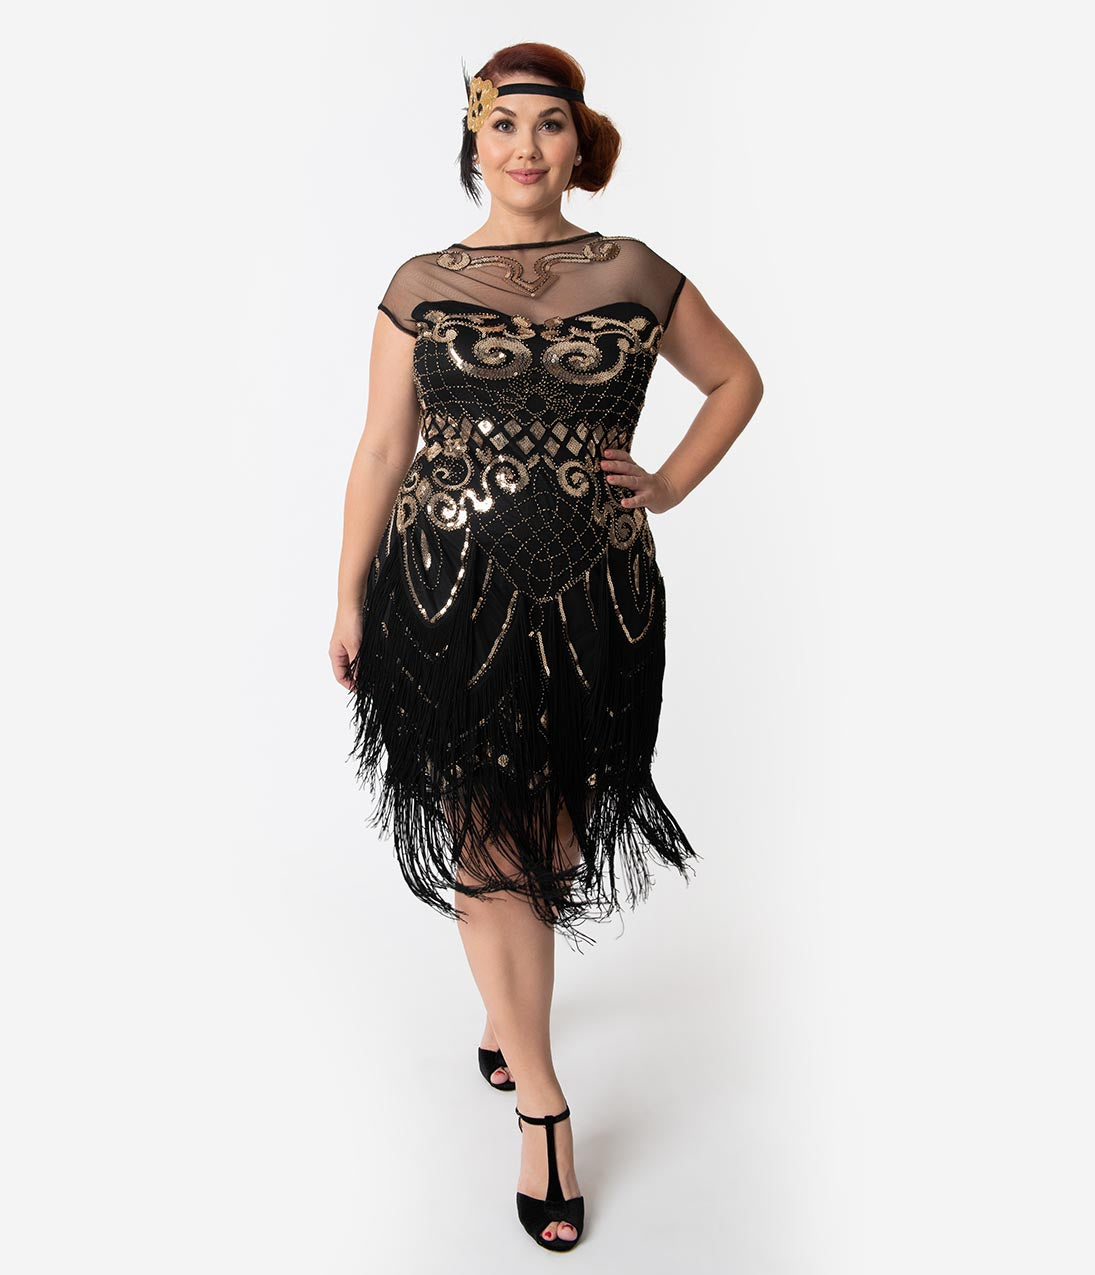 445385c9d Unique Vintage Plus Size 1920s Black & Gold Sequin Fringe Zulla Flapper  Dress